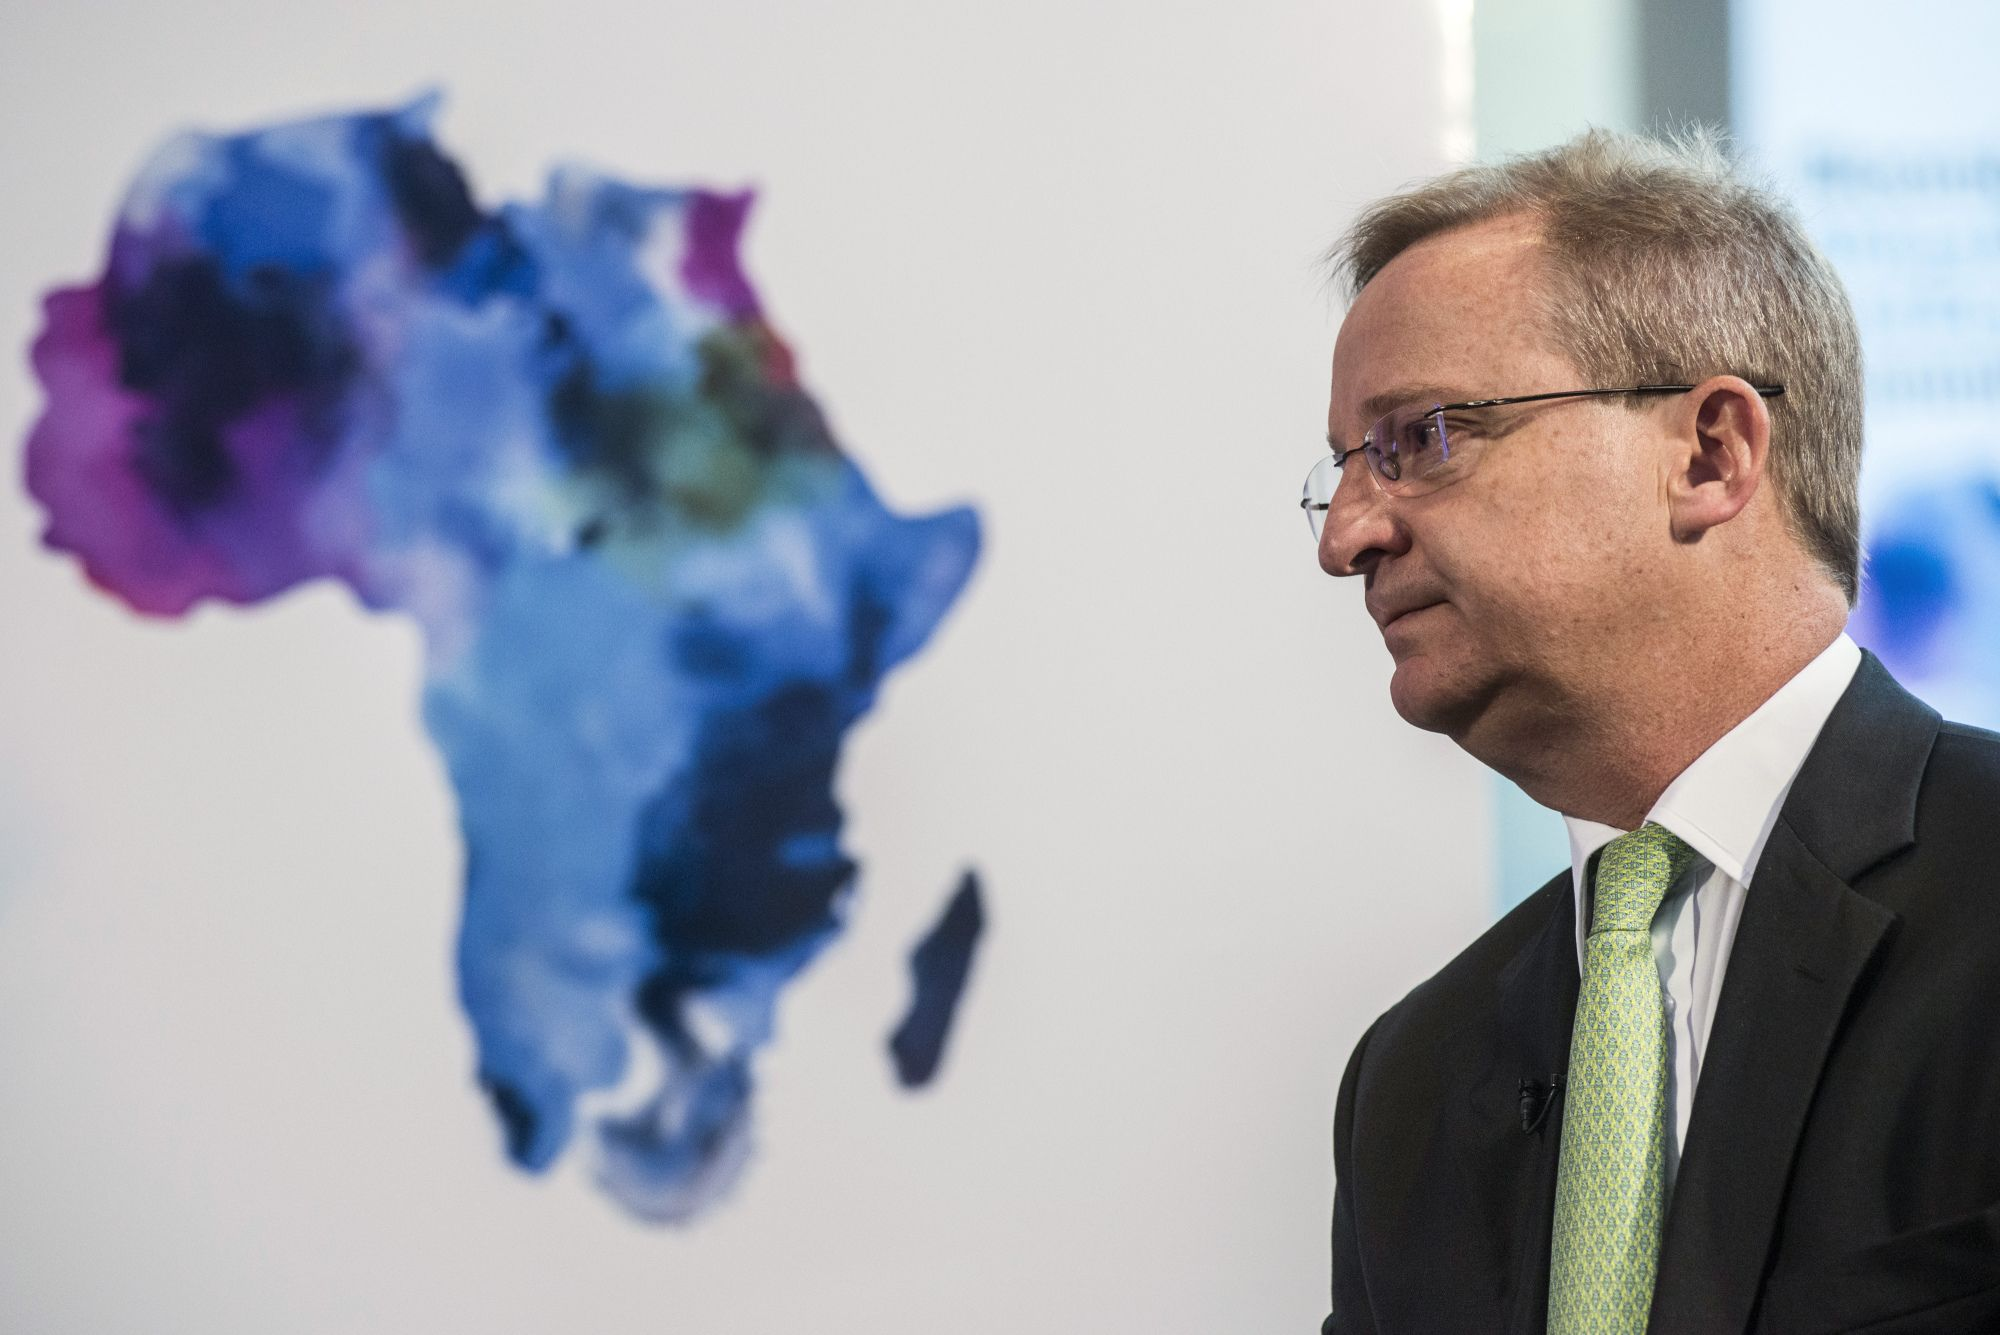 Nedbank CEO Sees State-Owned Firms as Biggest South African Risk